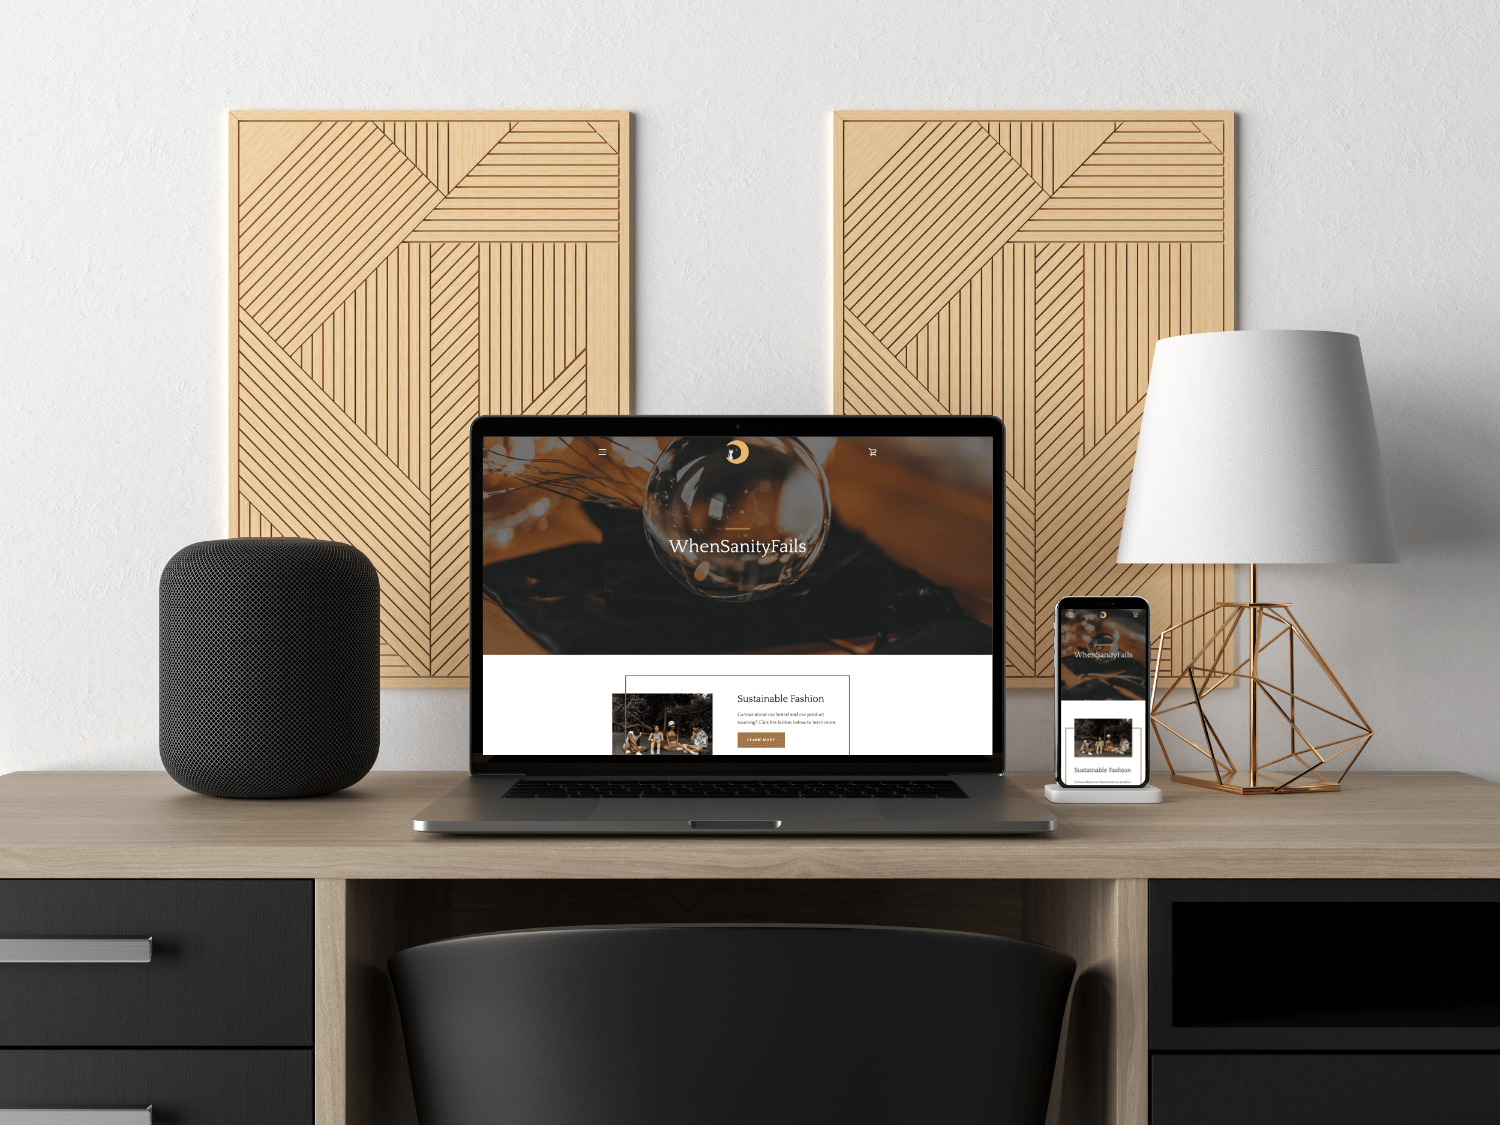 Desktop and mobile phone mockup of When Sanity Fails, online store.